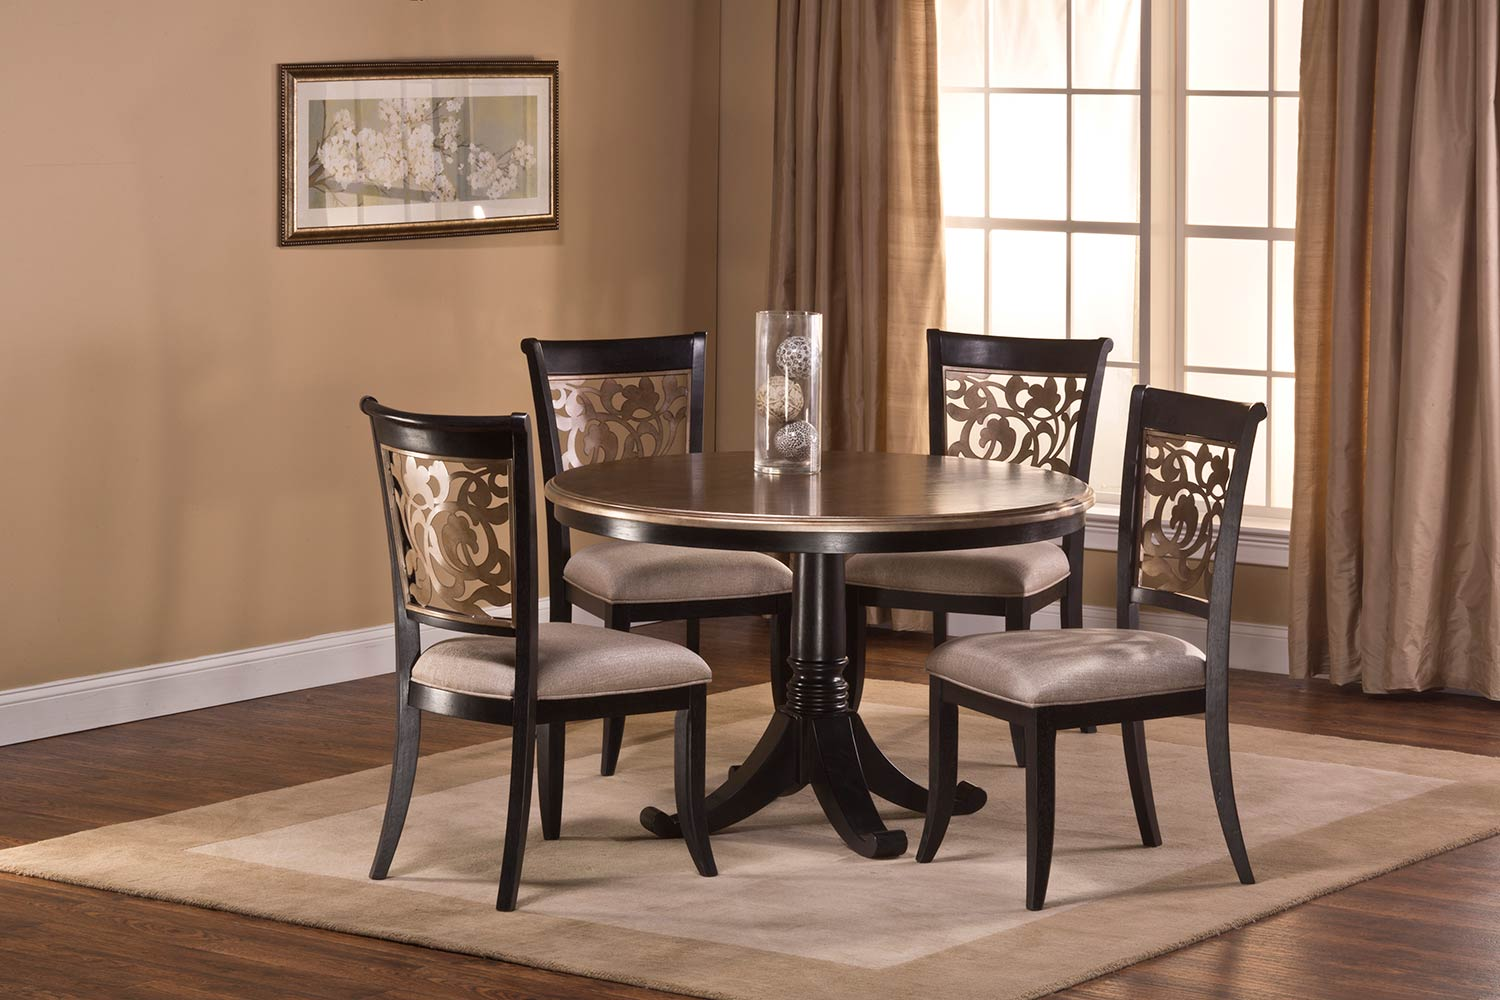 Hillsdale Bennington Dining Set - Black Distressed Gray